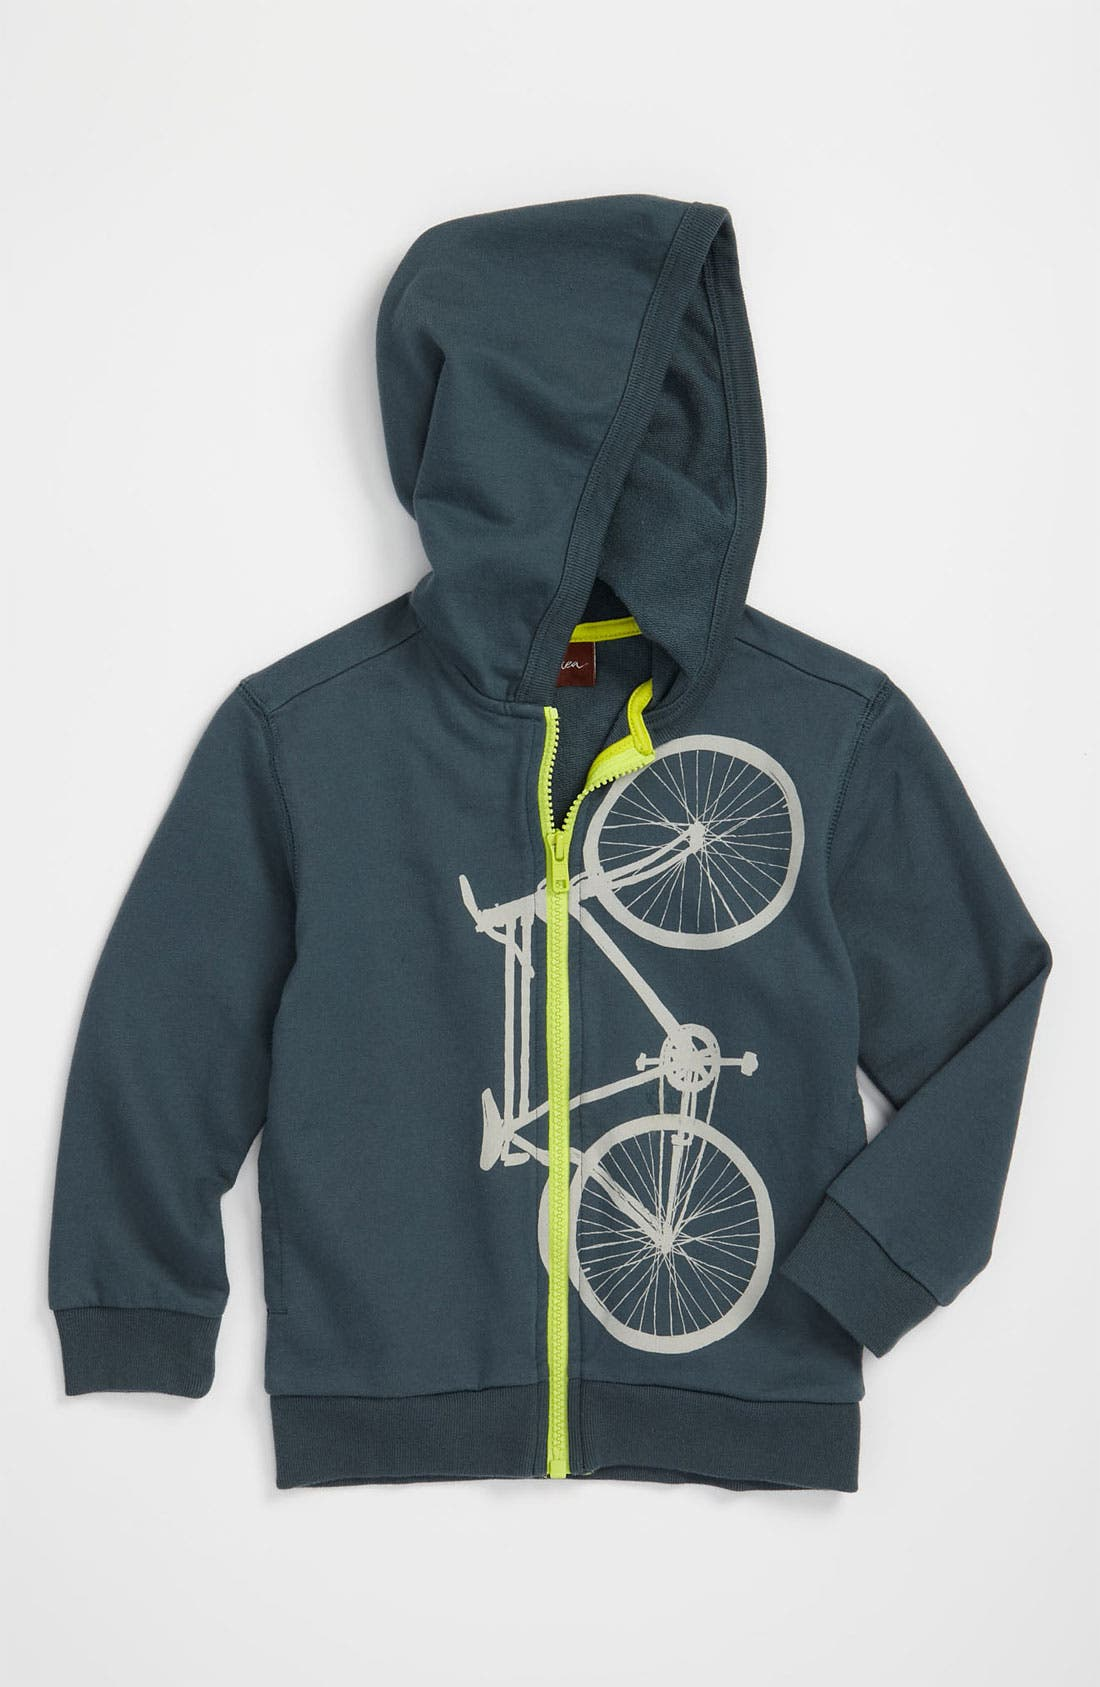 Main Image - Tea Collection 'Cykel' Hoodie (Infant)